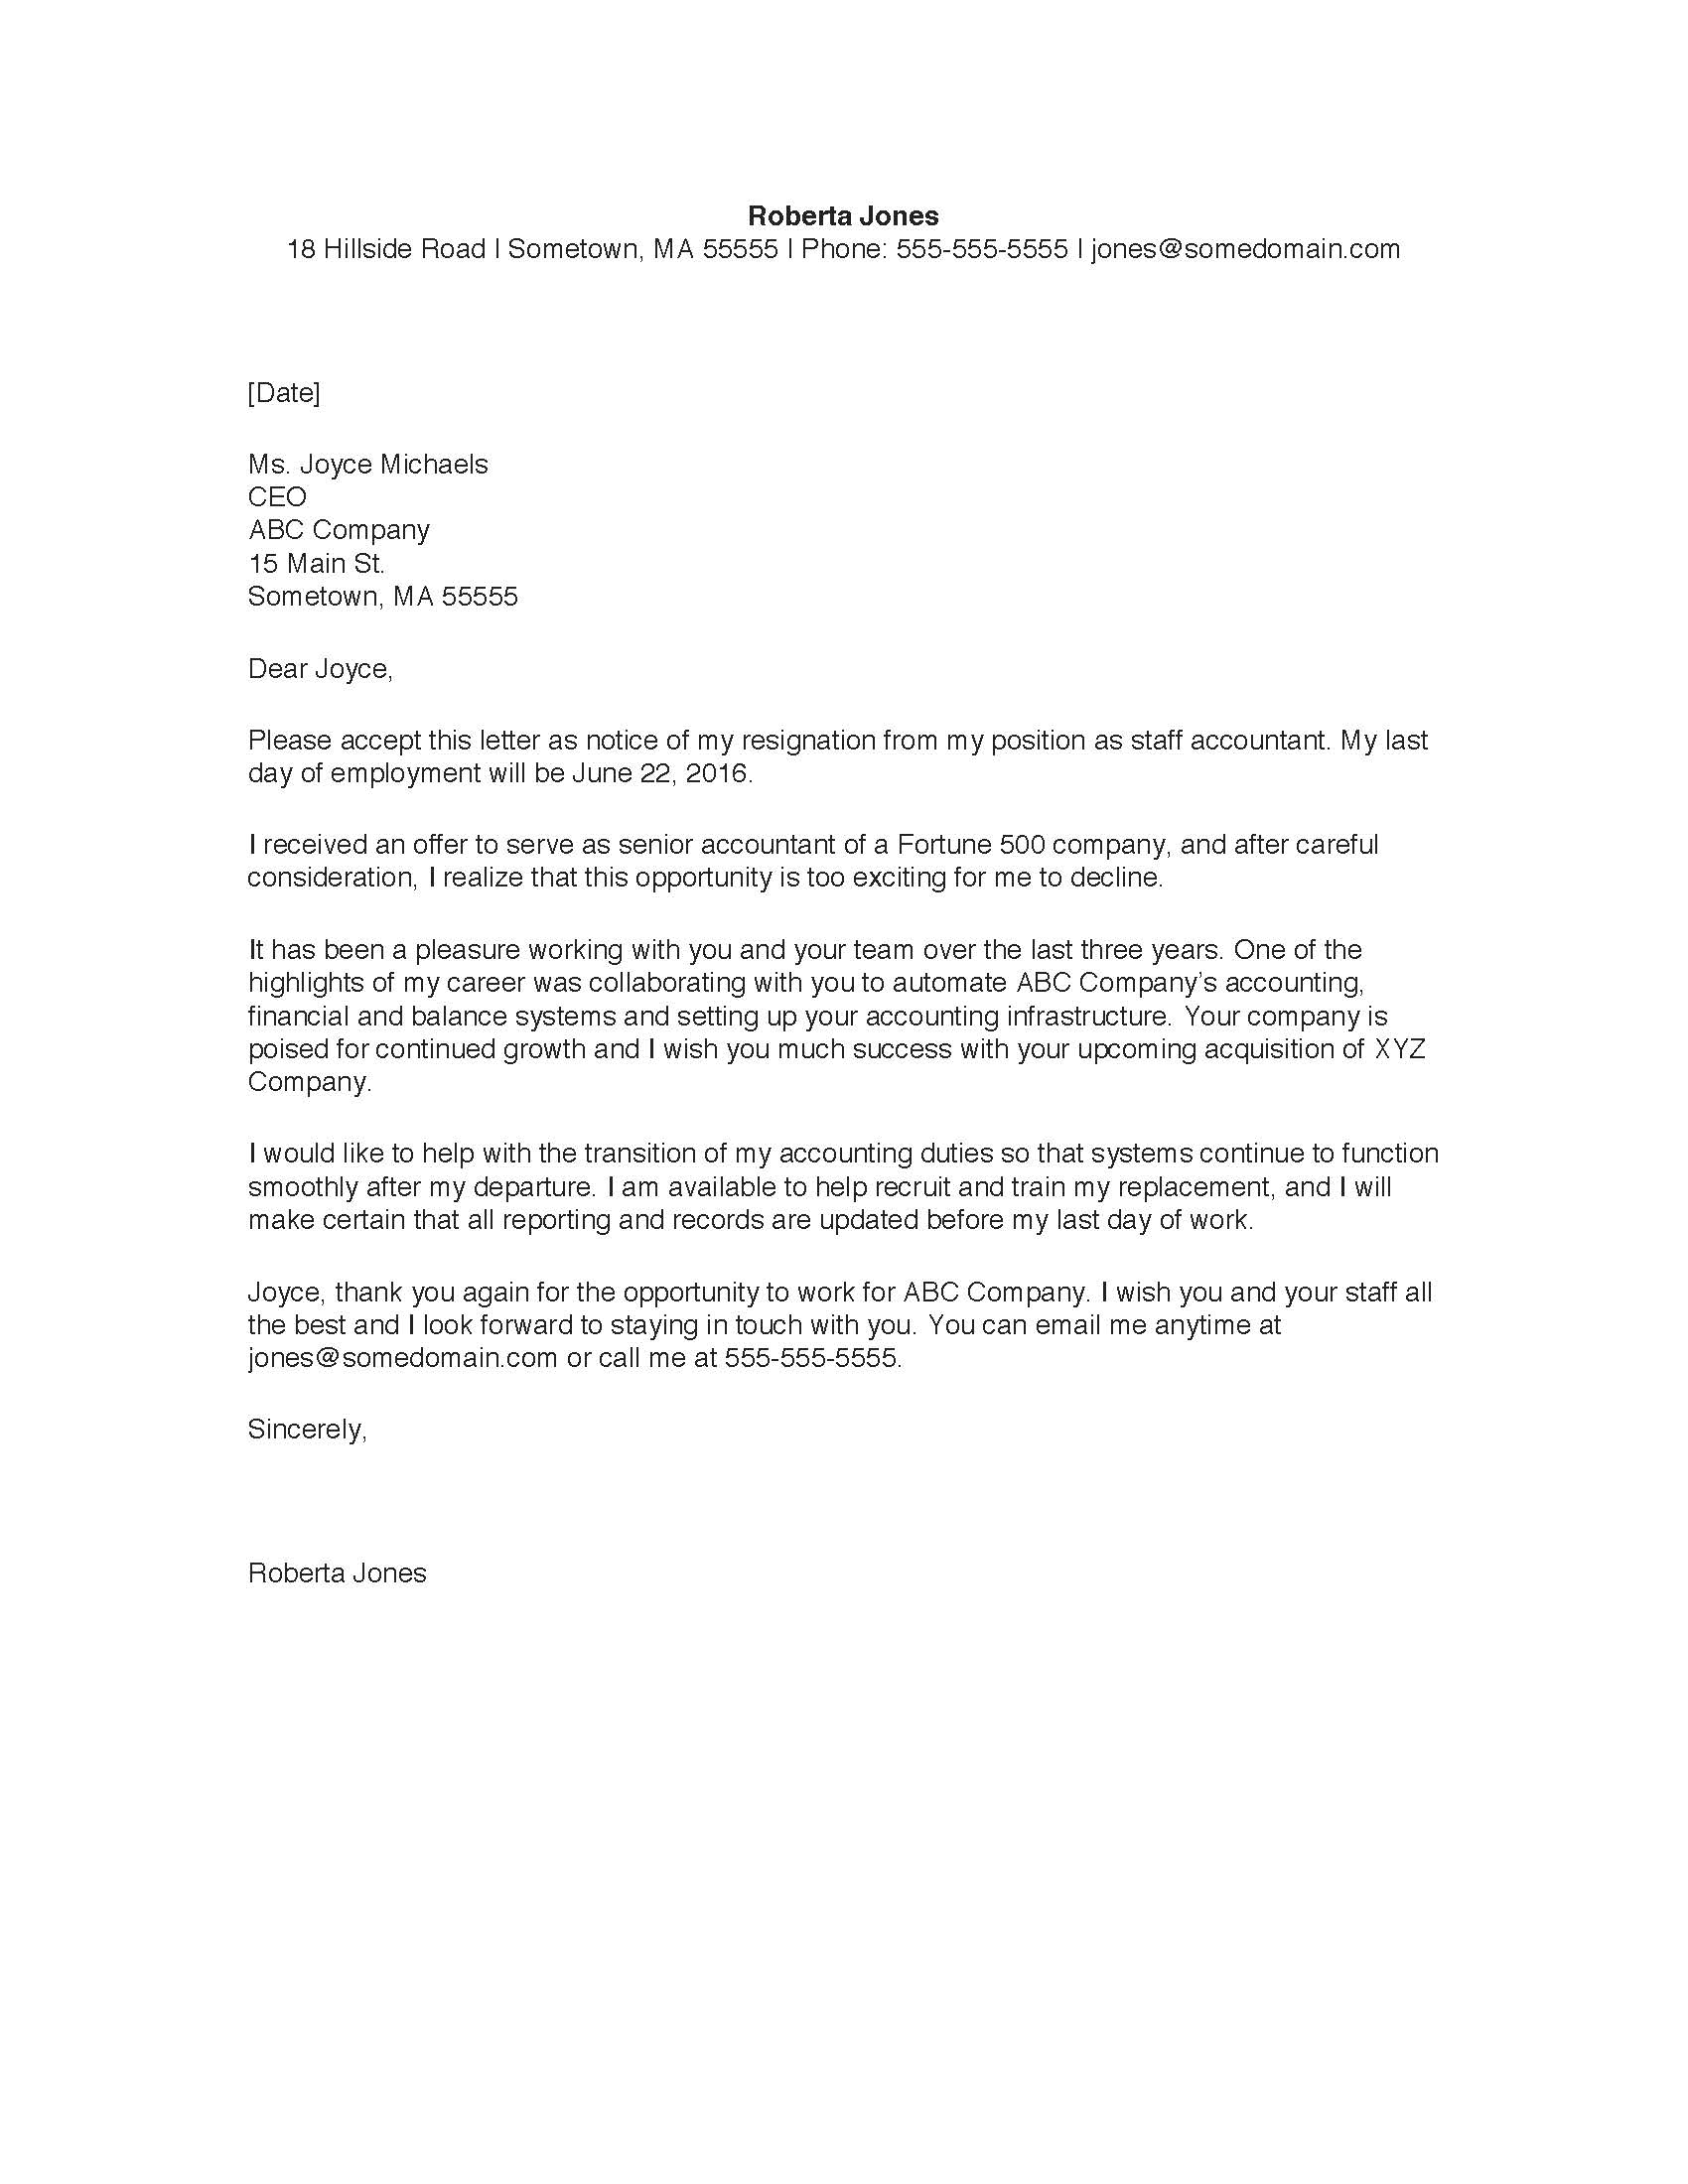 Sample resignation letter monster sample resignation letter madrichimfo Image collections